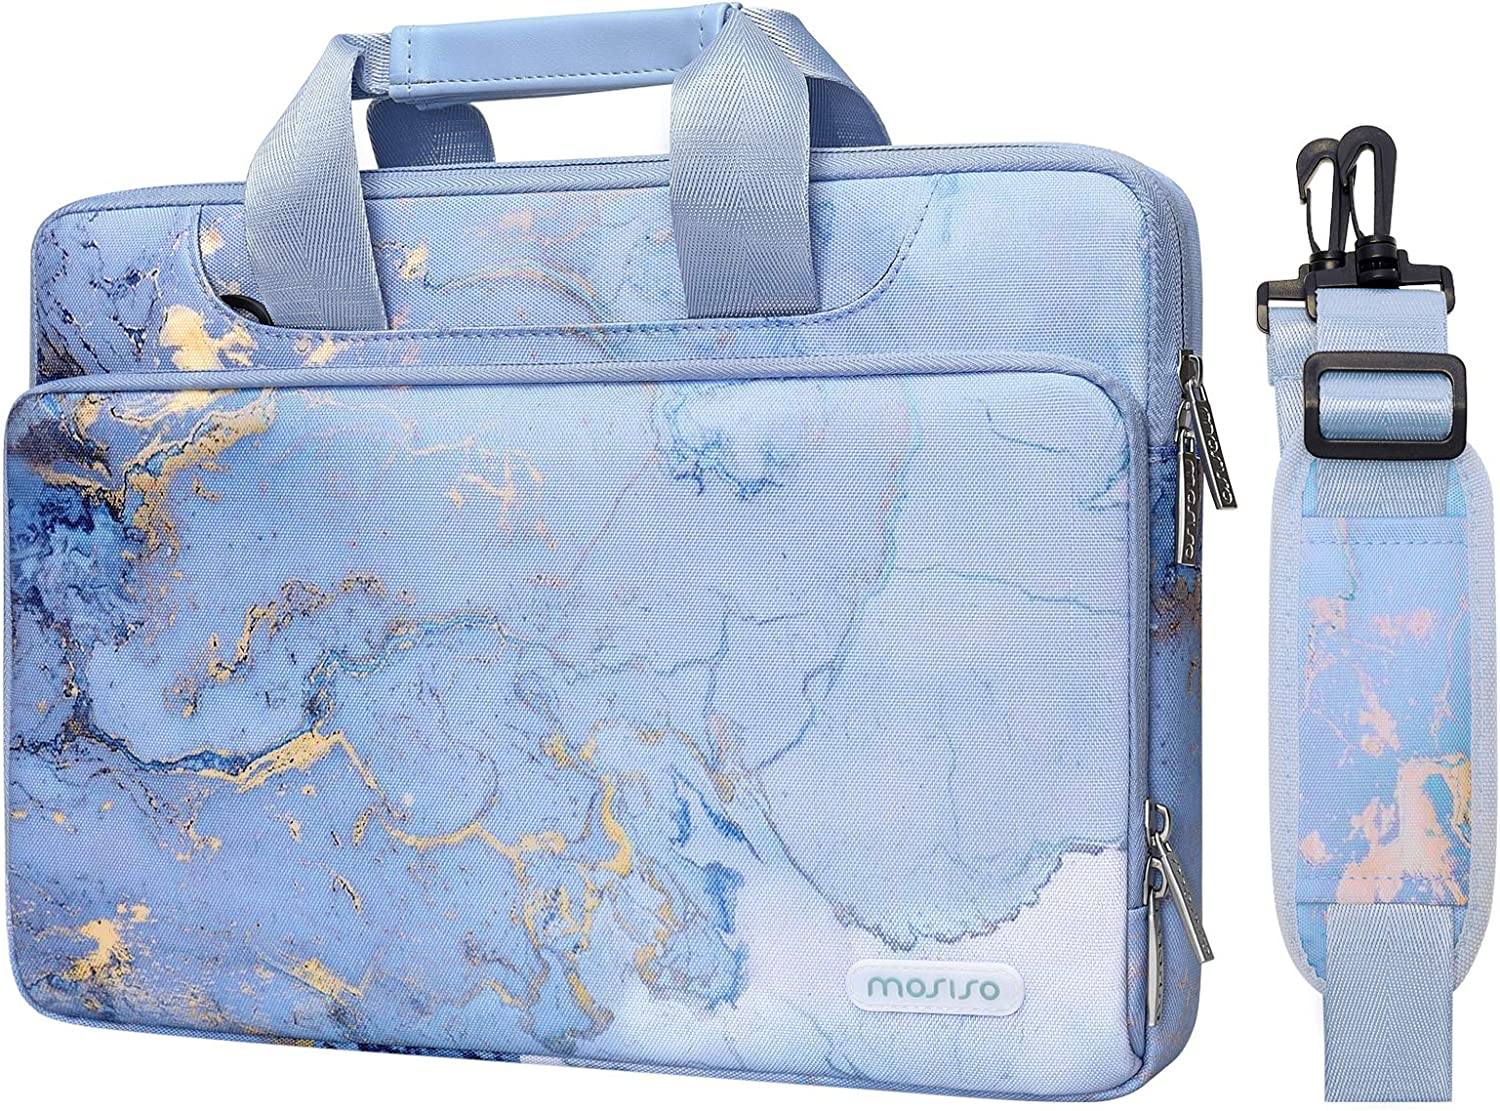 MOSISO 360 Protective Laptop Shoulder Bag Compatible with MacBook Pro/Air 13 inch, 13.5 Surface Laptop, Surface Book, Water Repellent Watercolor Marble Sleeve Case with Trolley Belt, Blue